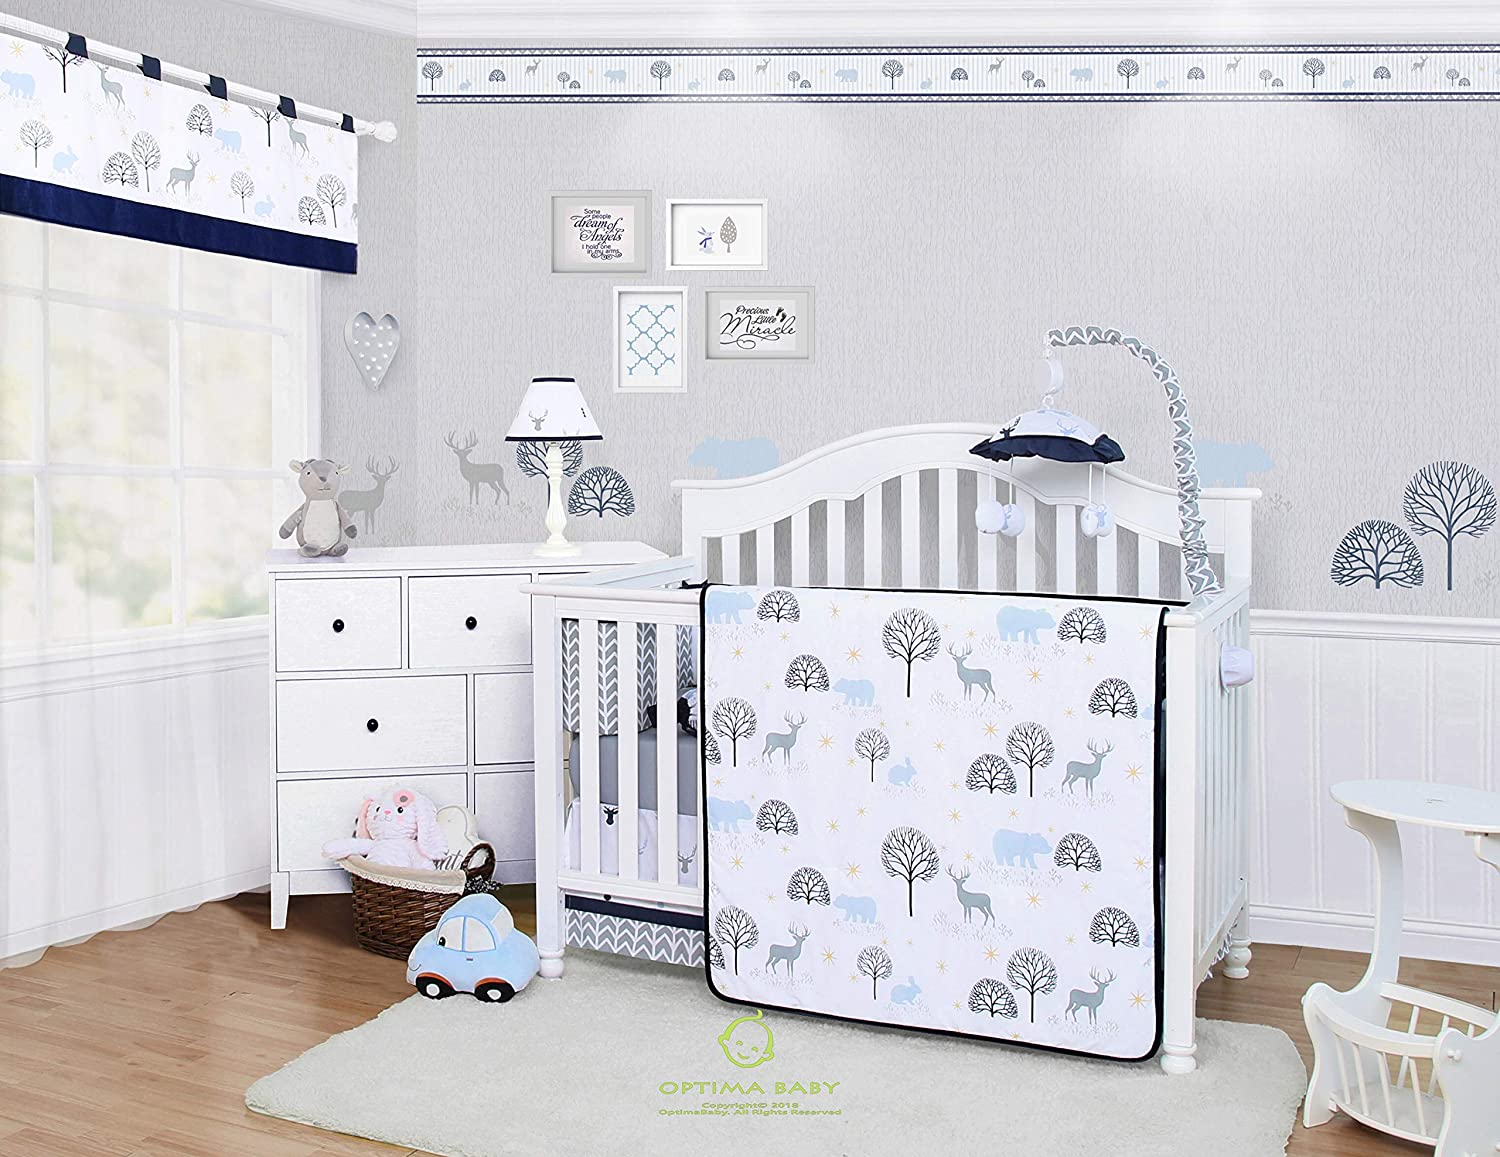 OptimaBaby Woodland Forest Deer 6 Piece Baby Nursery Crib Bedding Set SZ-CF-611